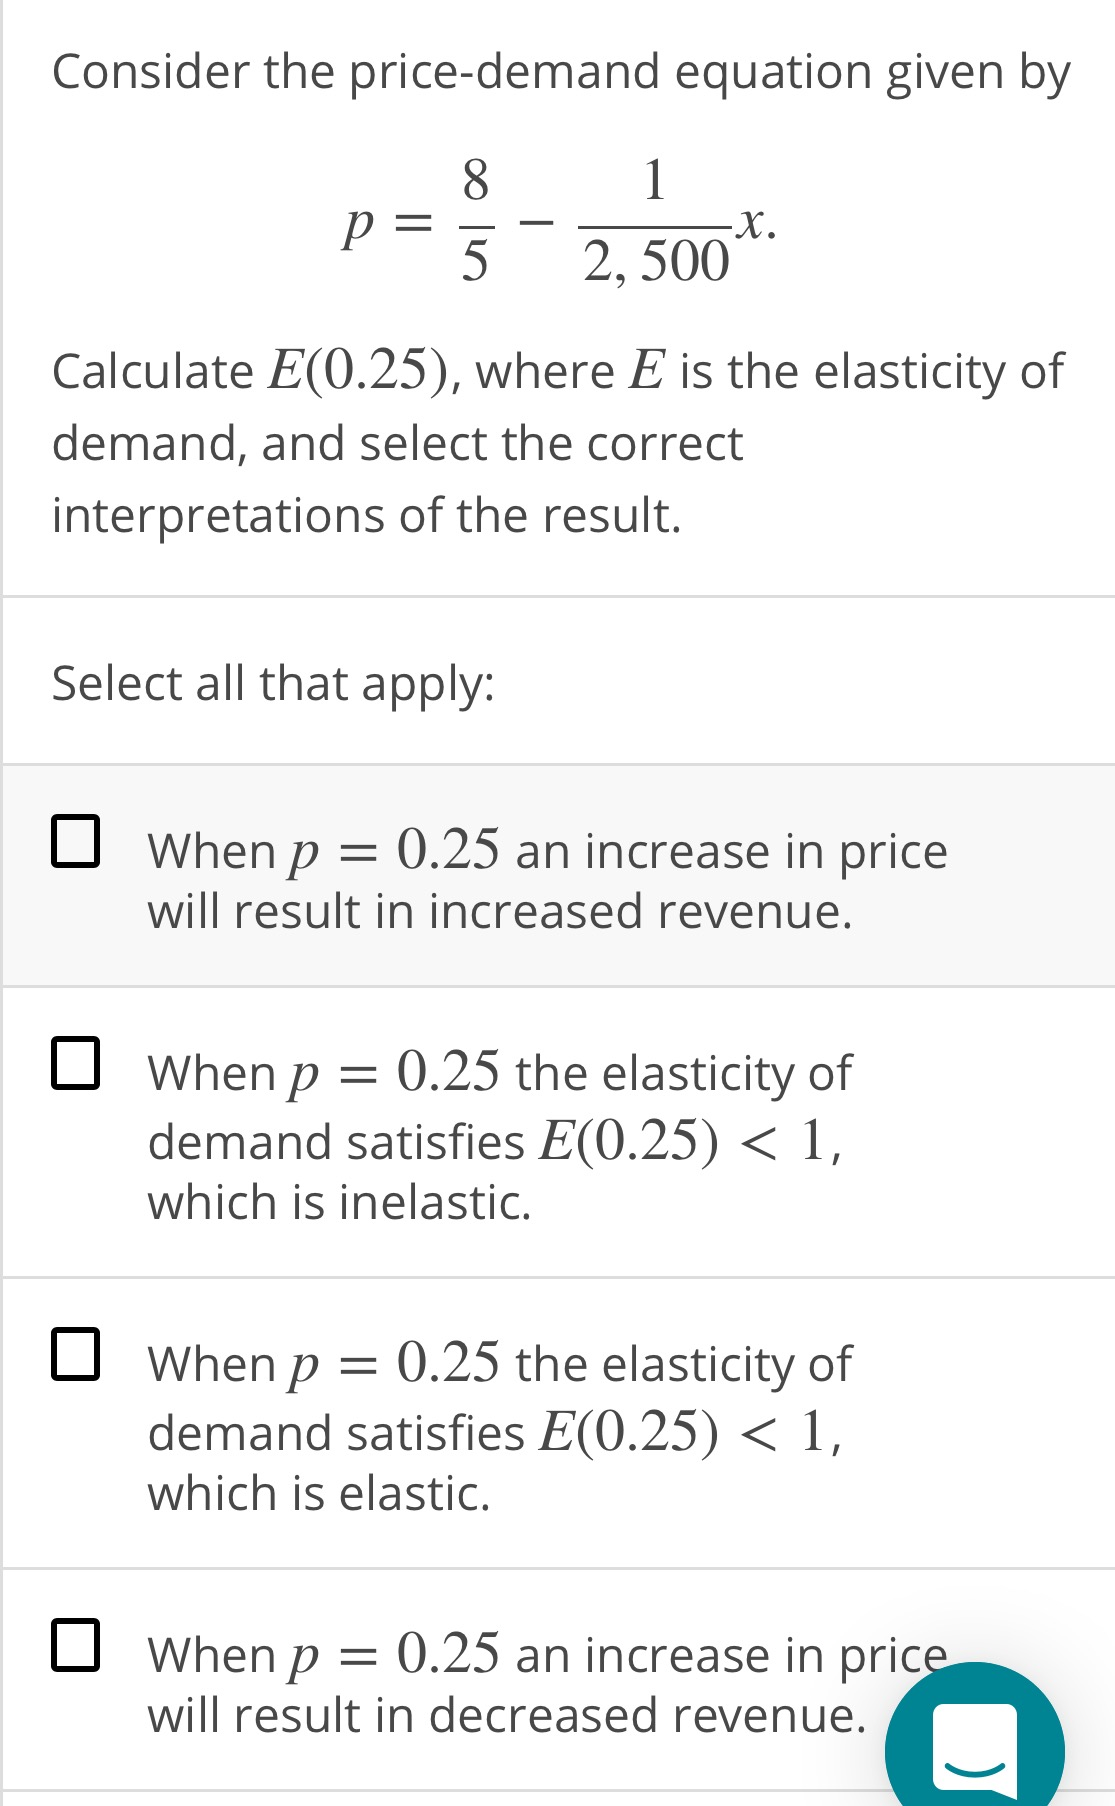 Consider the price-demand equation given by 8. 5 2, 500 Calculate E(0.25), where E is the elasticity of demand, and select the correct interpretations of the result. Select all that apply: O When p = 0.25 an increase in price will result in increased revenue. O When p = 0.25 the elasticity of demand satisfies E(0.25) < 1, which is inelastic. When p = 0.25 the elasticity of demand satisfies E(0.25) < 1, which is elastic. O When p = will result in decreased revenue. 0.25 an increase in price